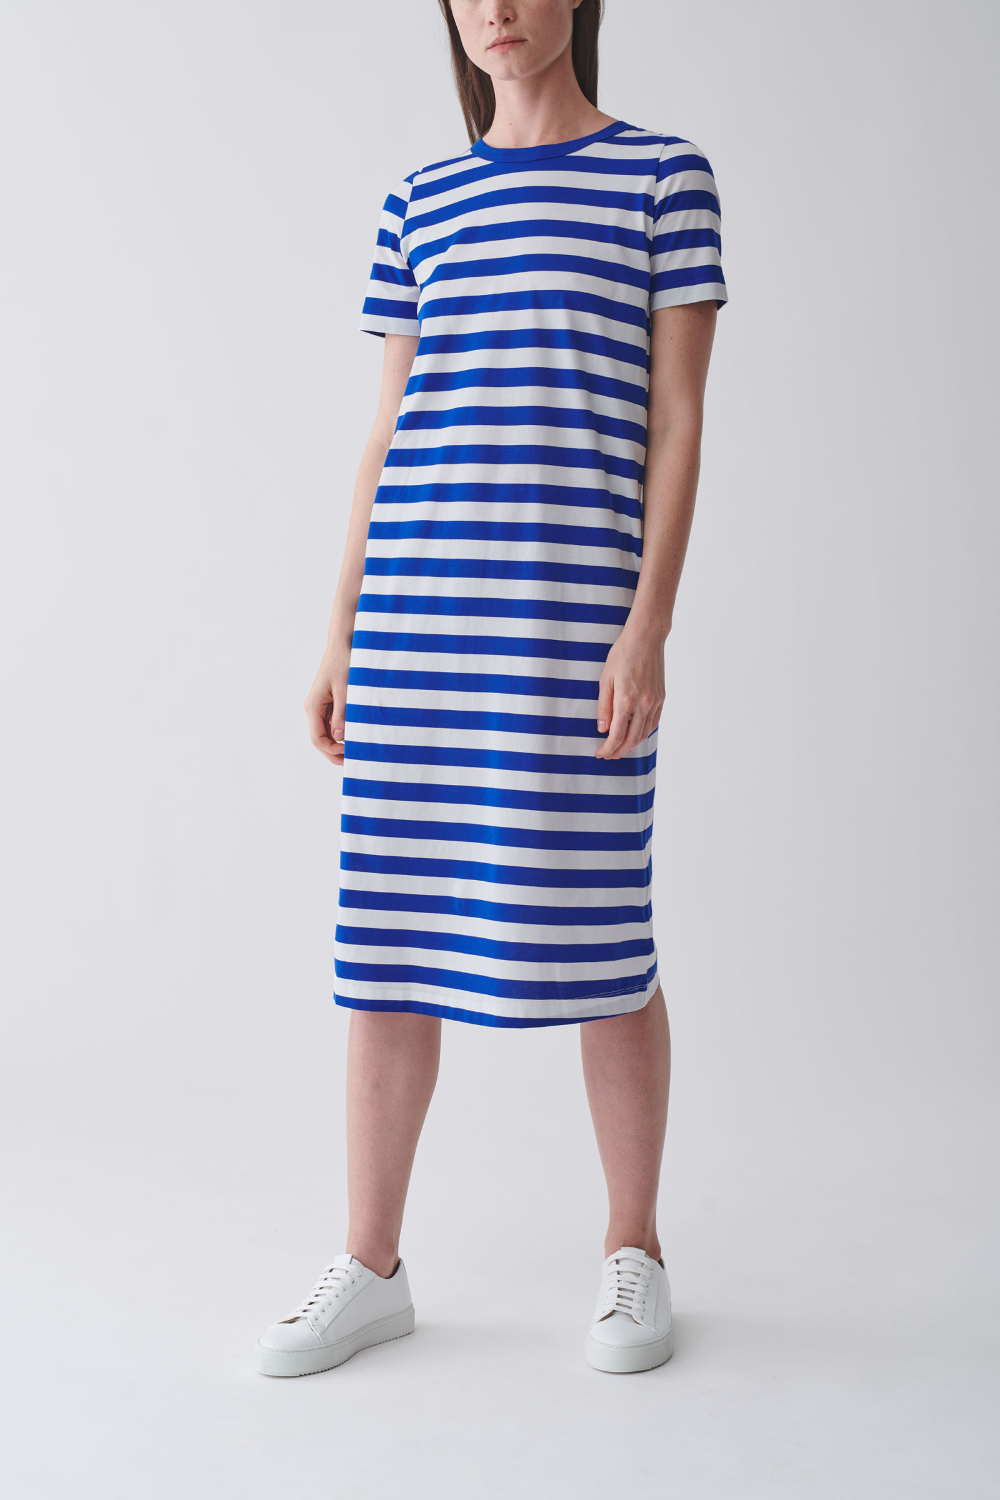 37+ Blue and white striped dress info